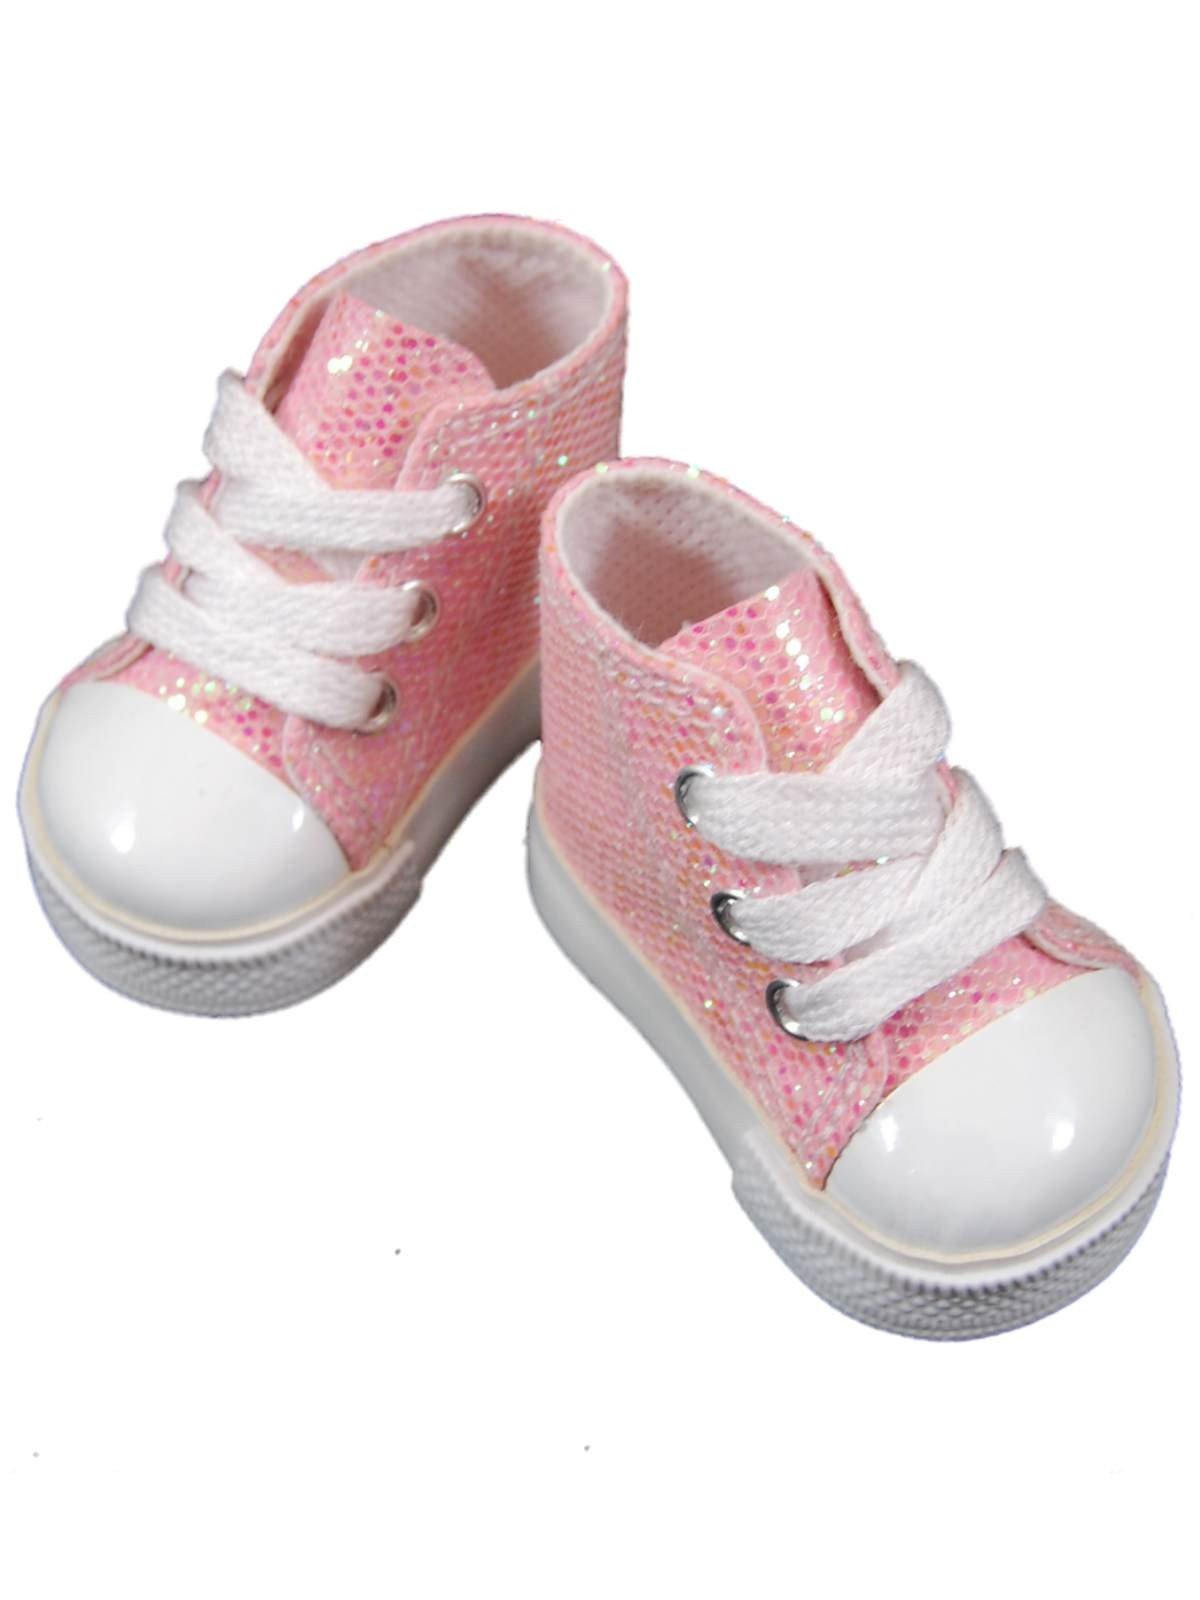 note ships 10 30 14 pink sparkle high top shoes fit 18 american girl doll